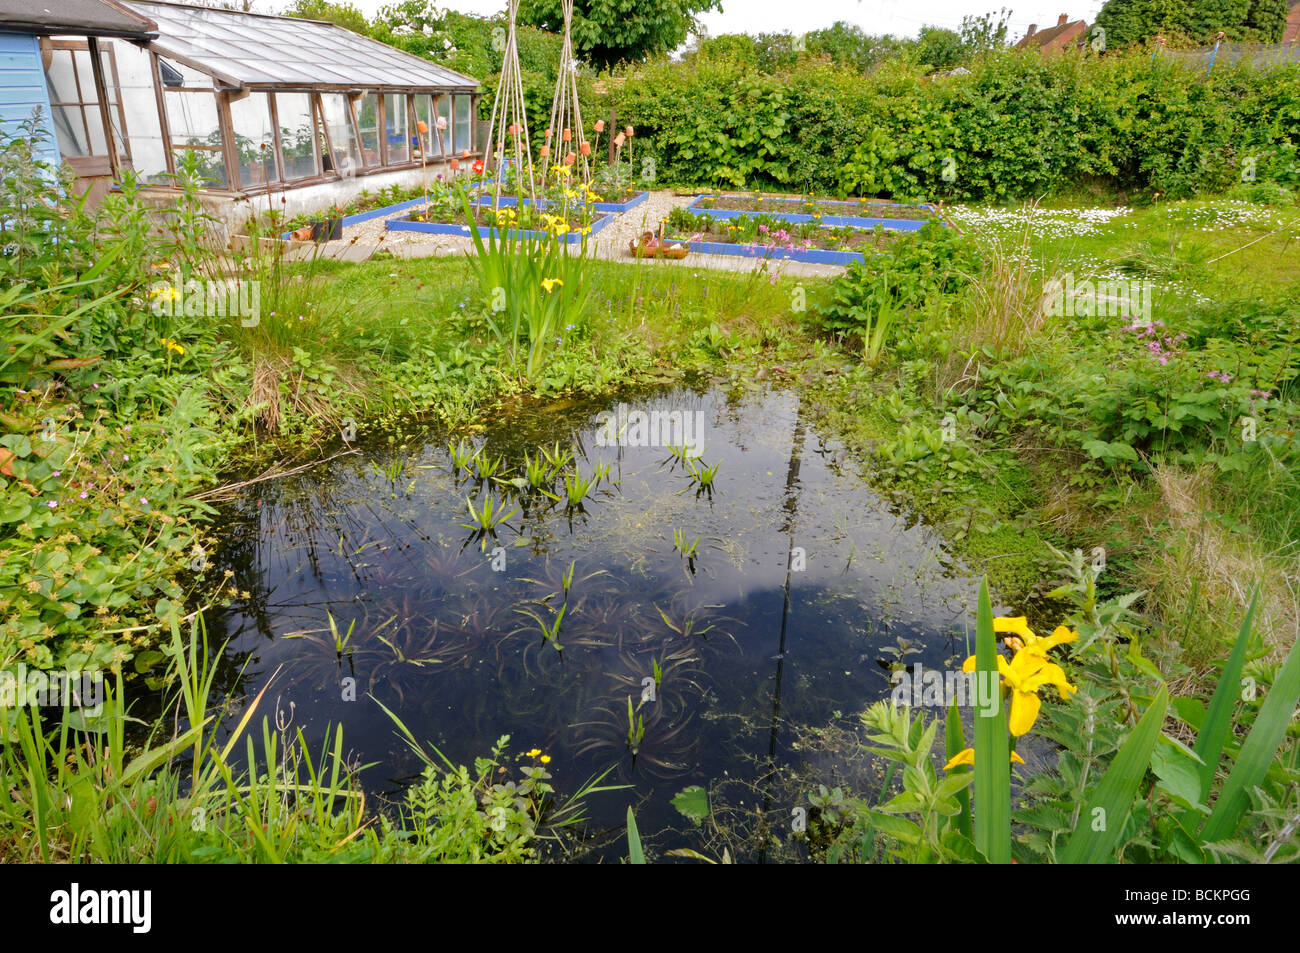 Small Urban Garden With Wildlife Pond And Raised Vegetable